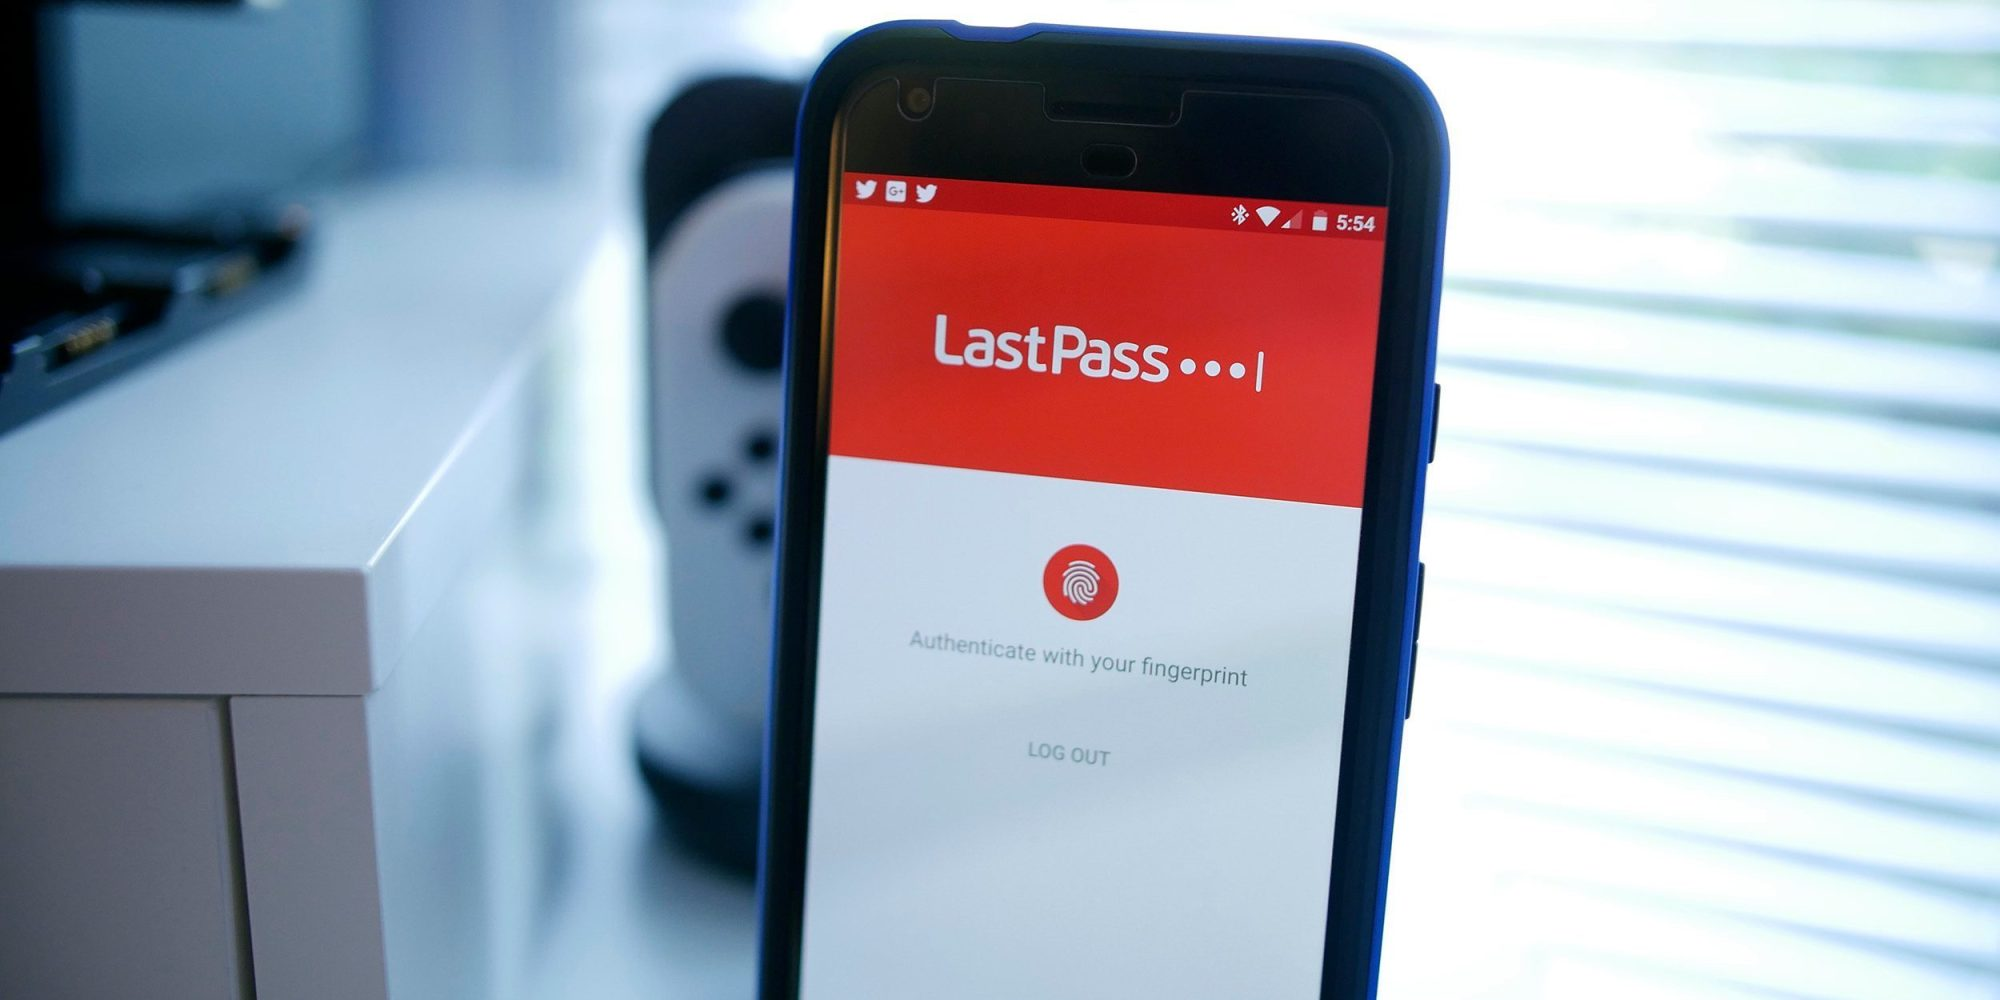 ❤ LastPass will restrict free users to only one type of device starting next month